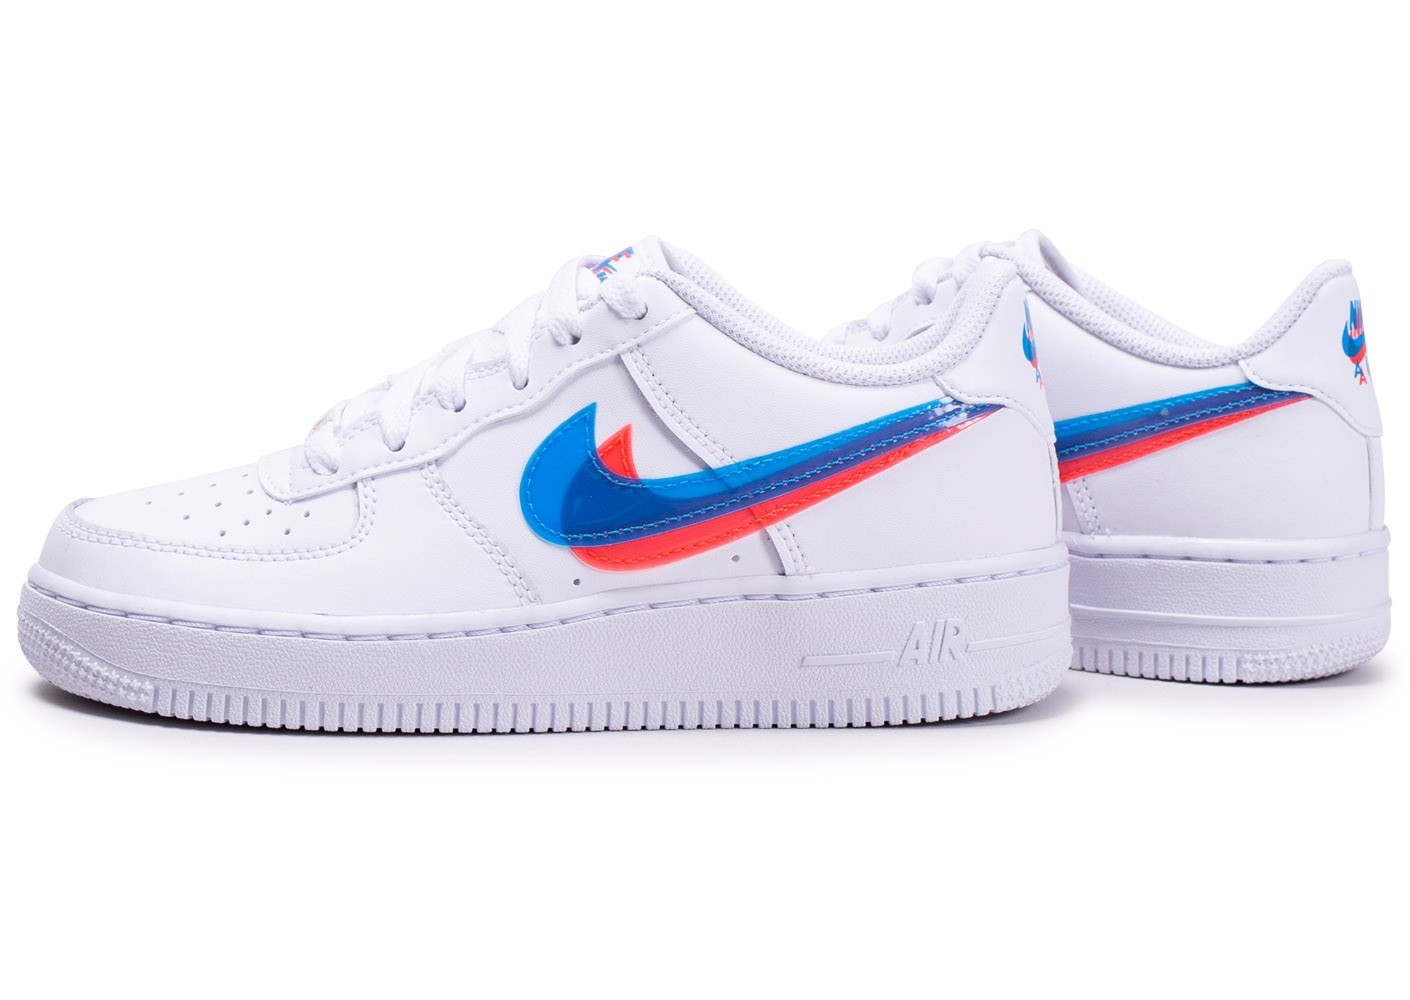 Nike Air Force 1 LV8 Low 3D blanche junior - Chaussures ...